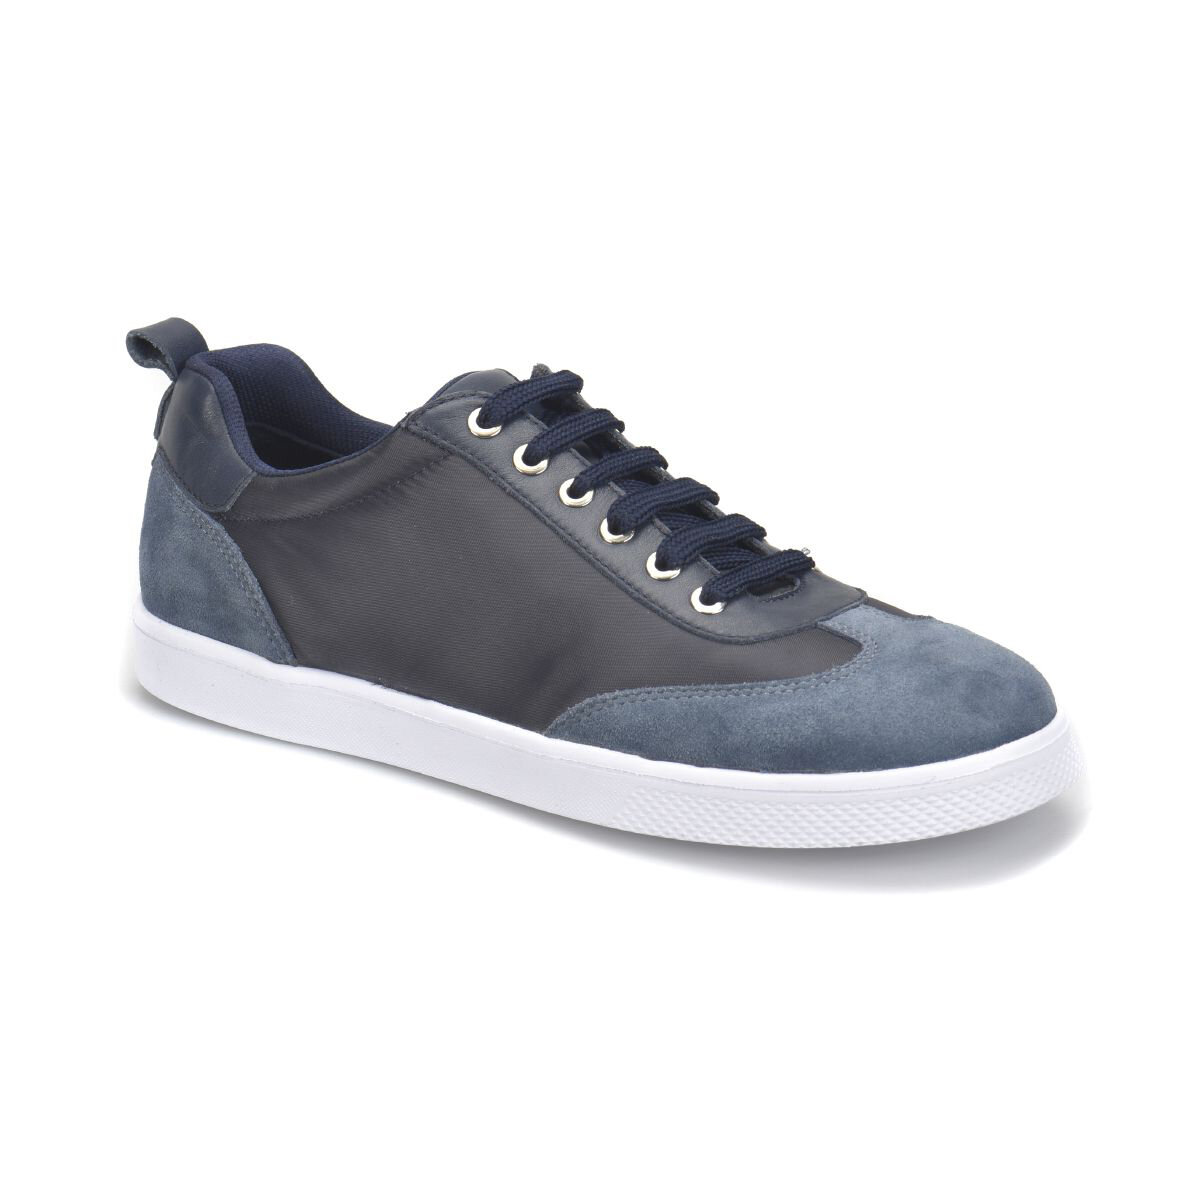 FLO Navy Blue Men Casual Shoes Spring Autumn Casual Flat Shoes Lace-up Low Top Male Sneakers Tenis Masculino Adulto Shoes Panama Club PR-300